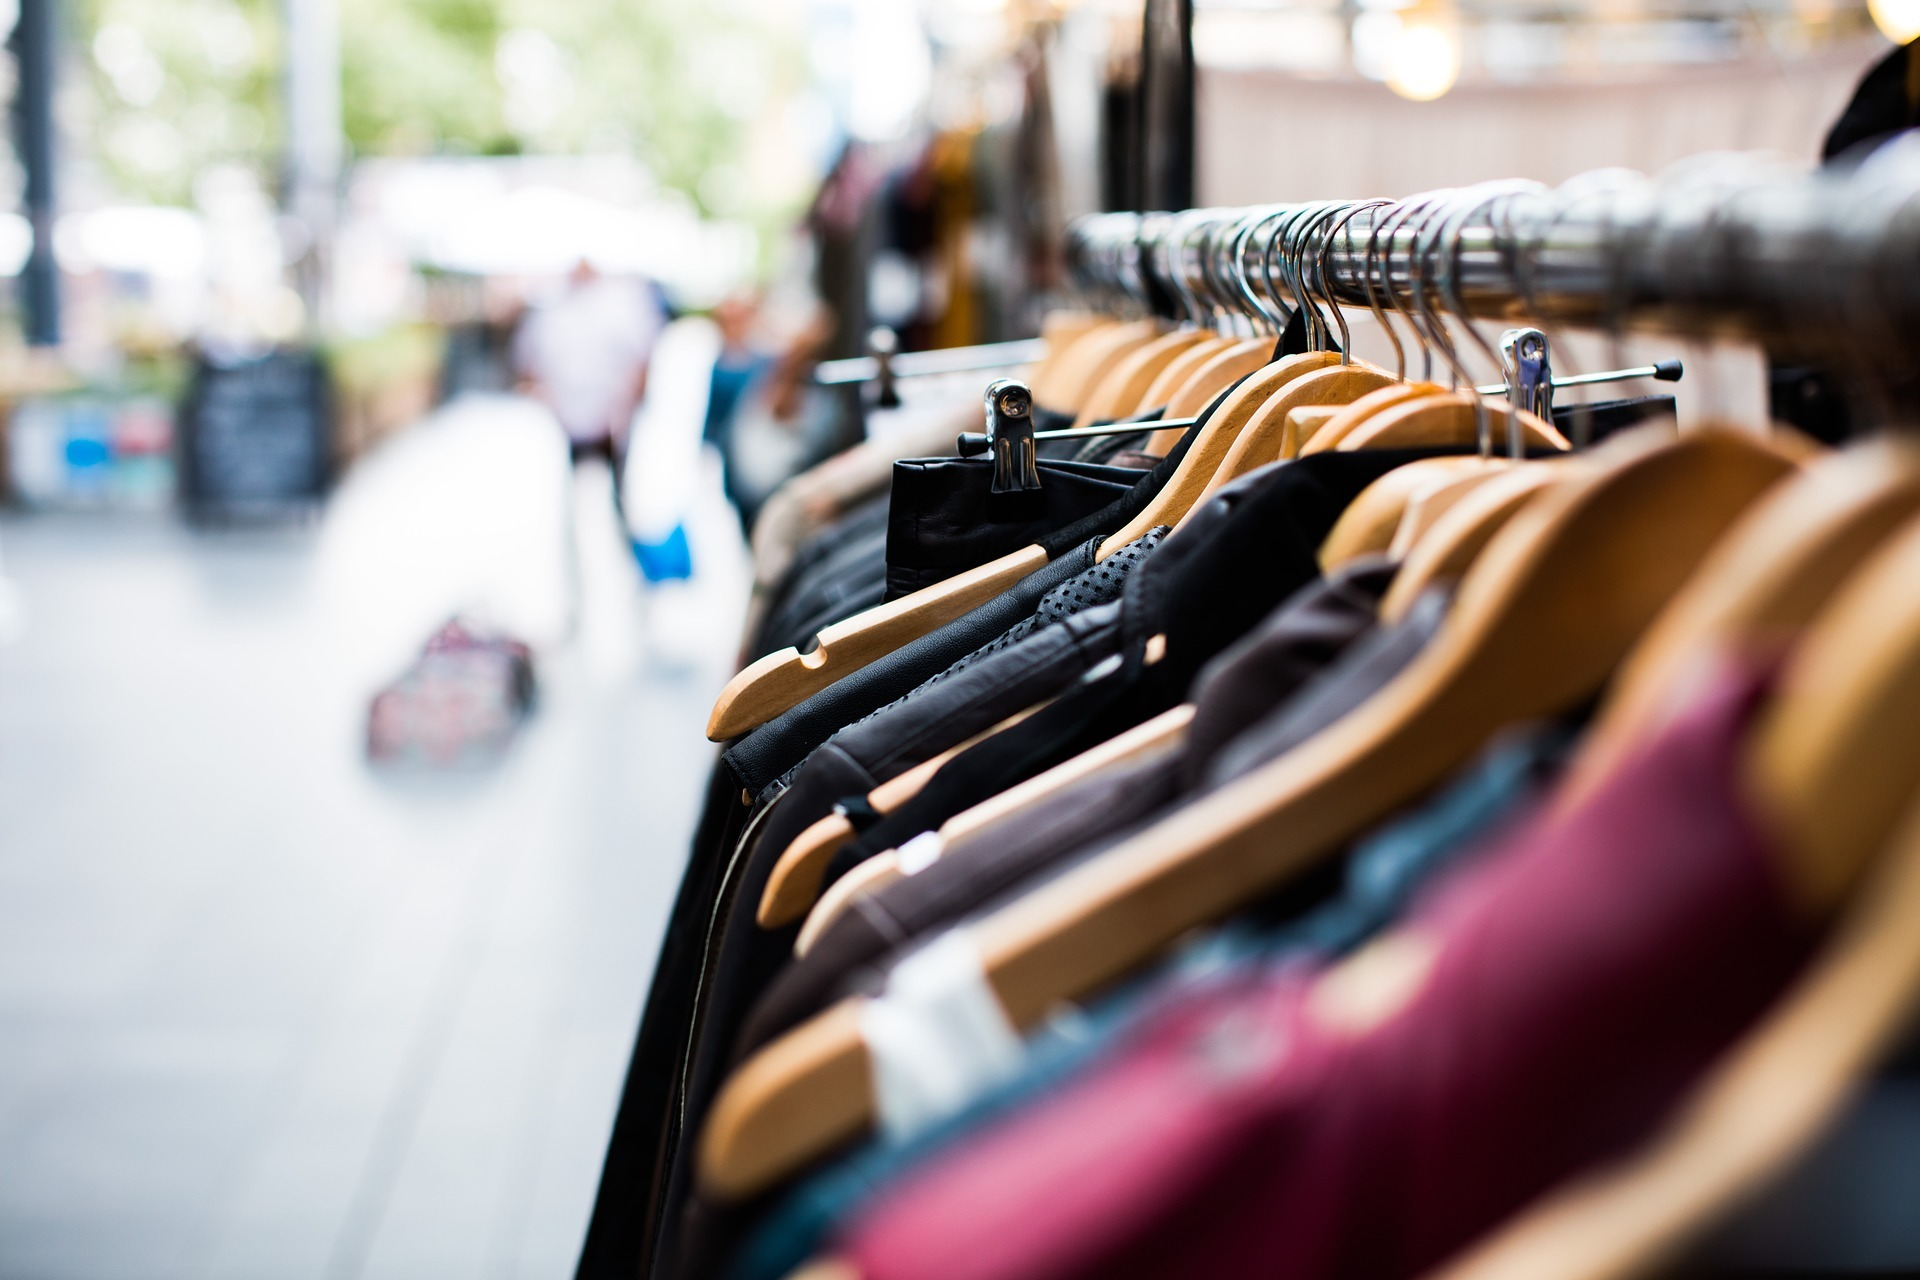 The charity claims 23 per cent of Londoners' wardrobes are unworn, equivalent to 123 million items of clothes